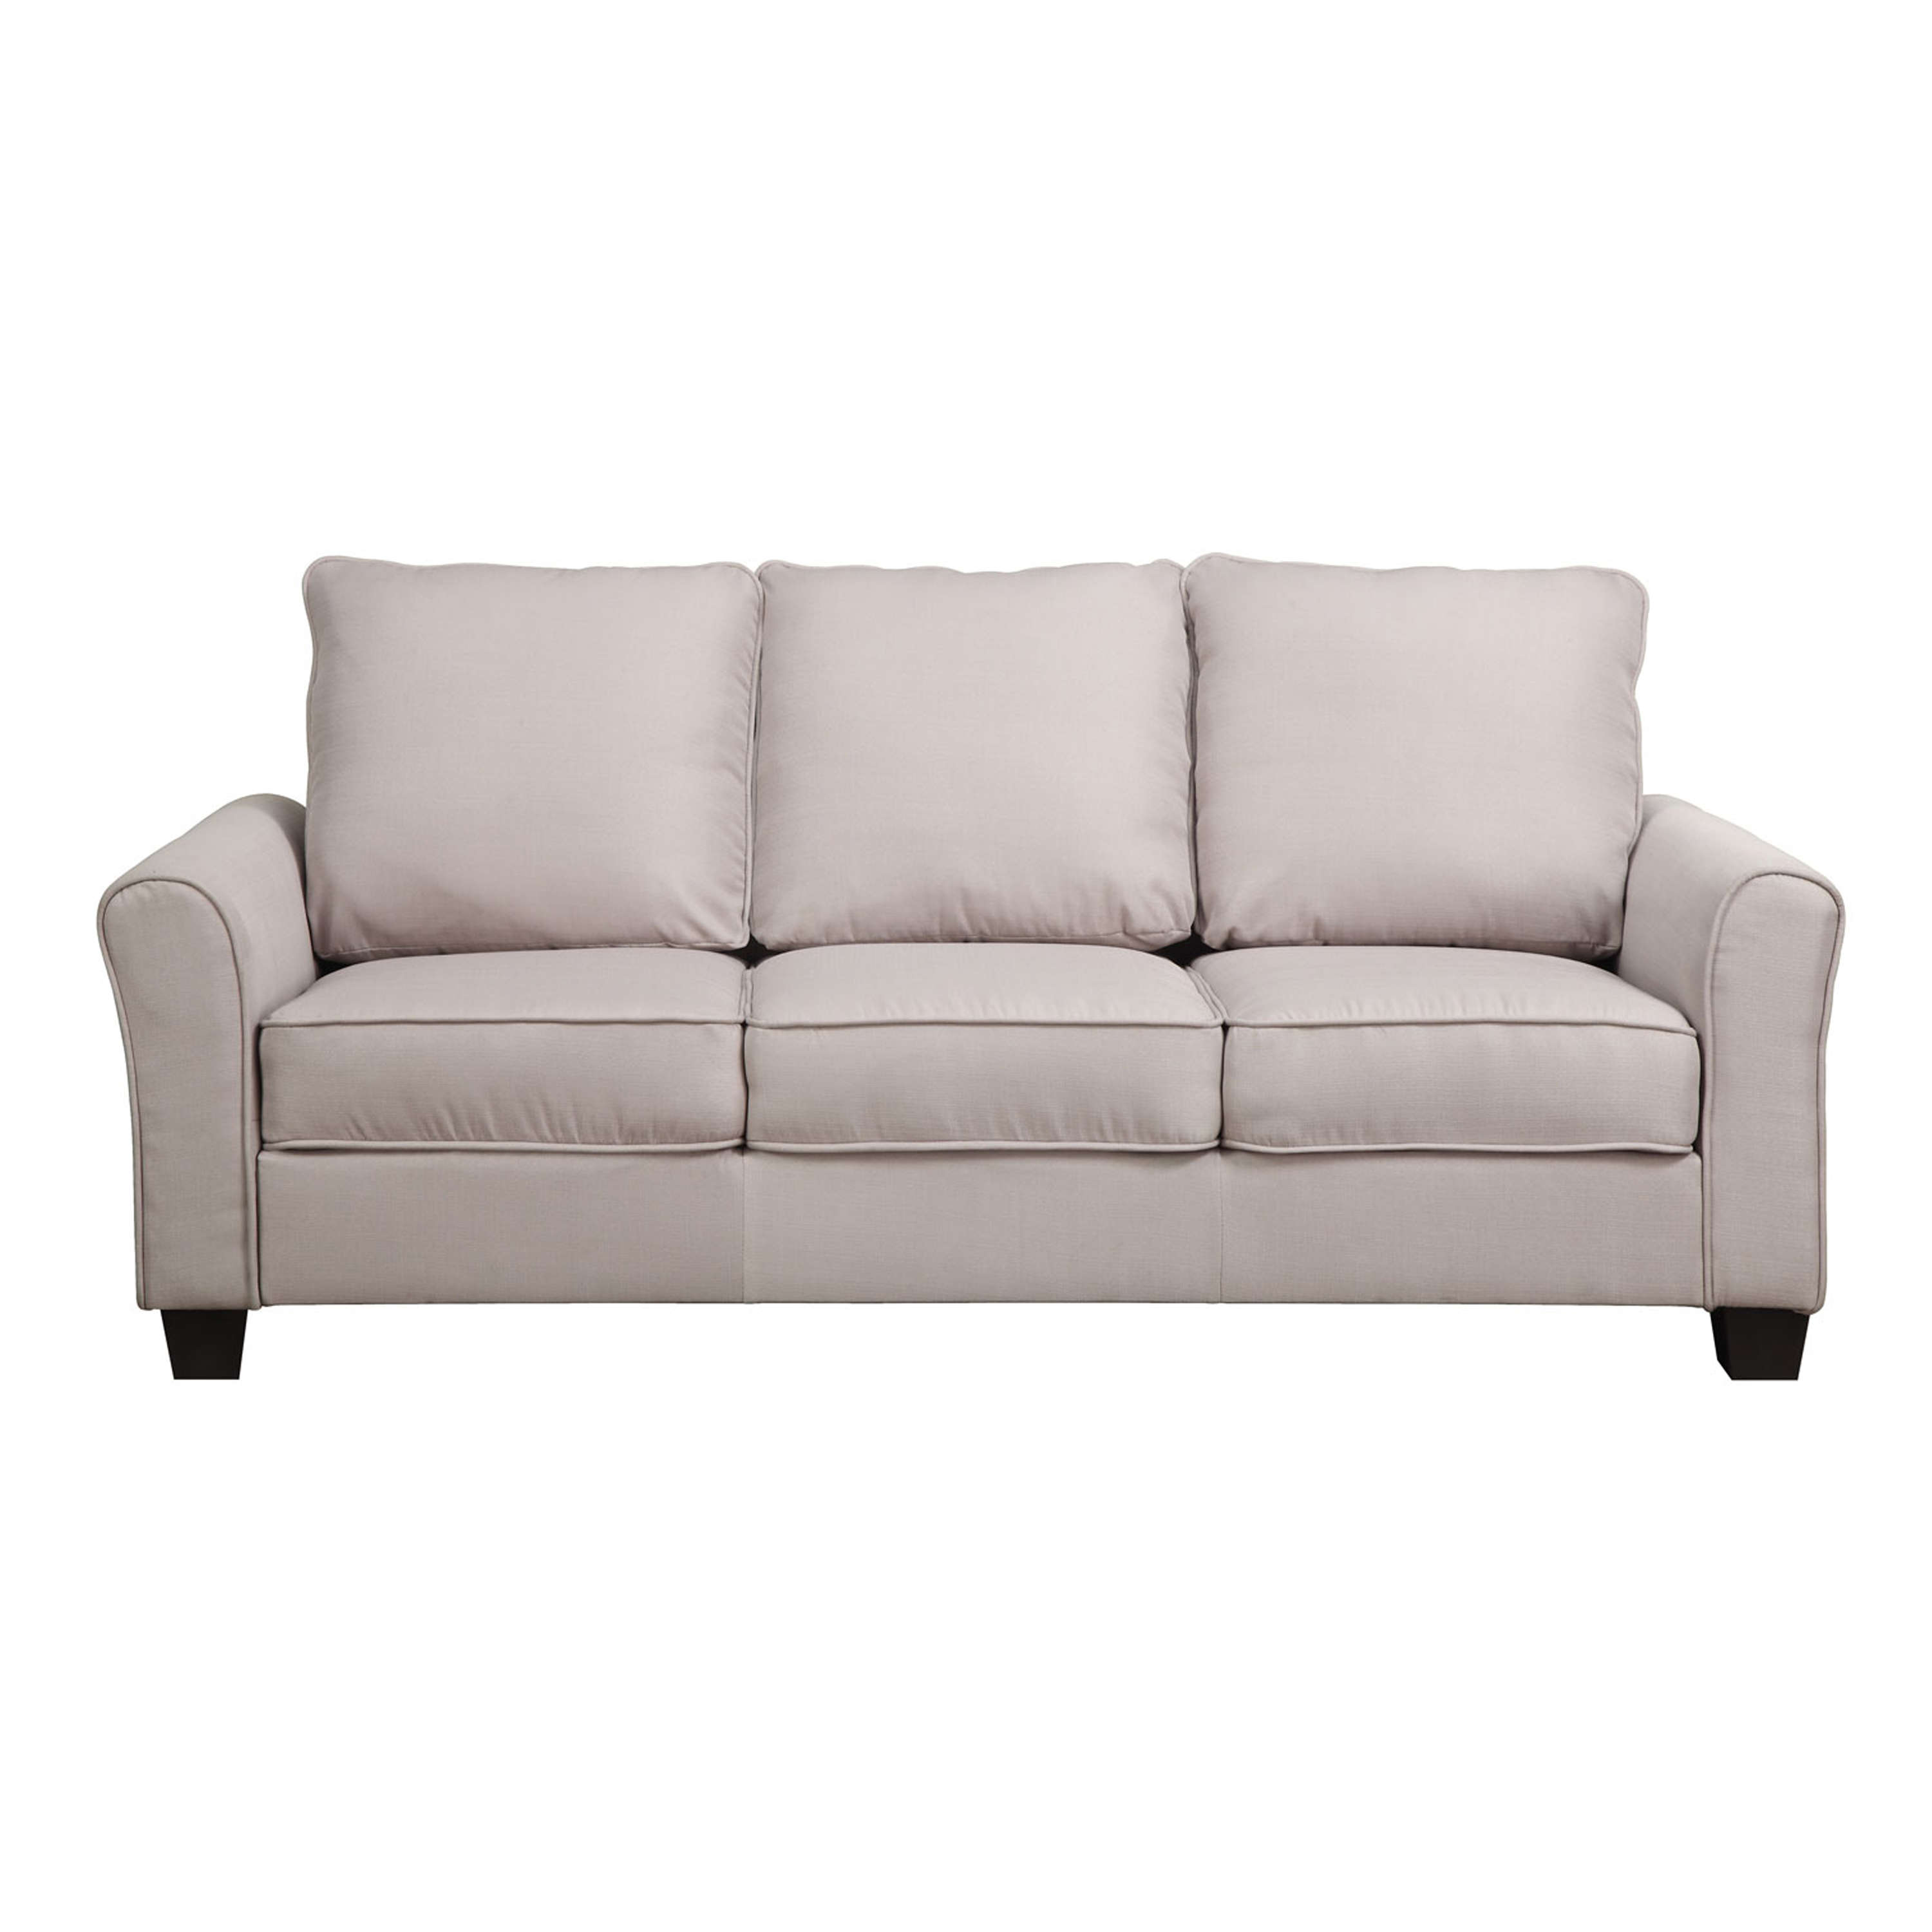 Axis Sofa, Multiple Colors by Dwell Home Inc